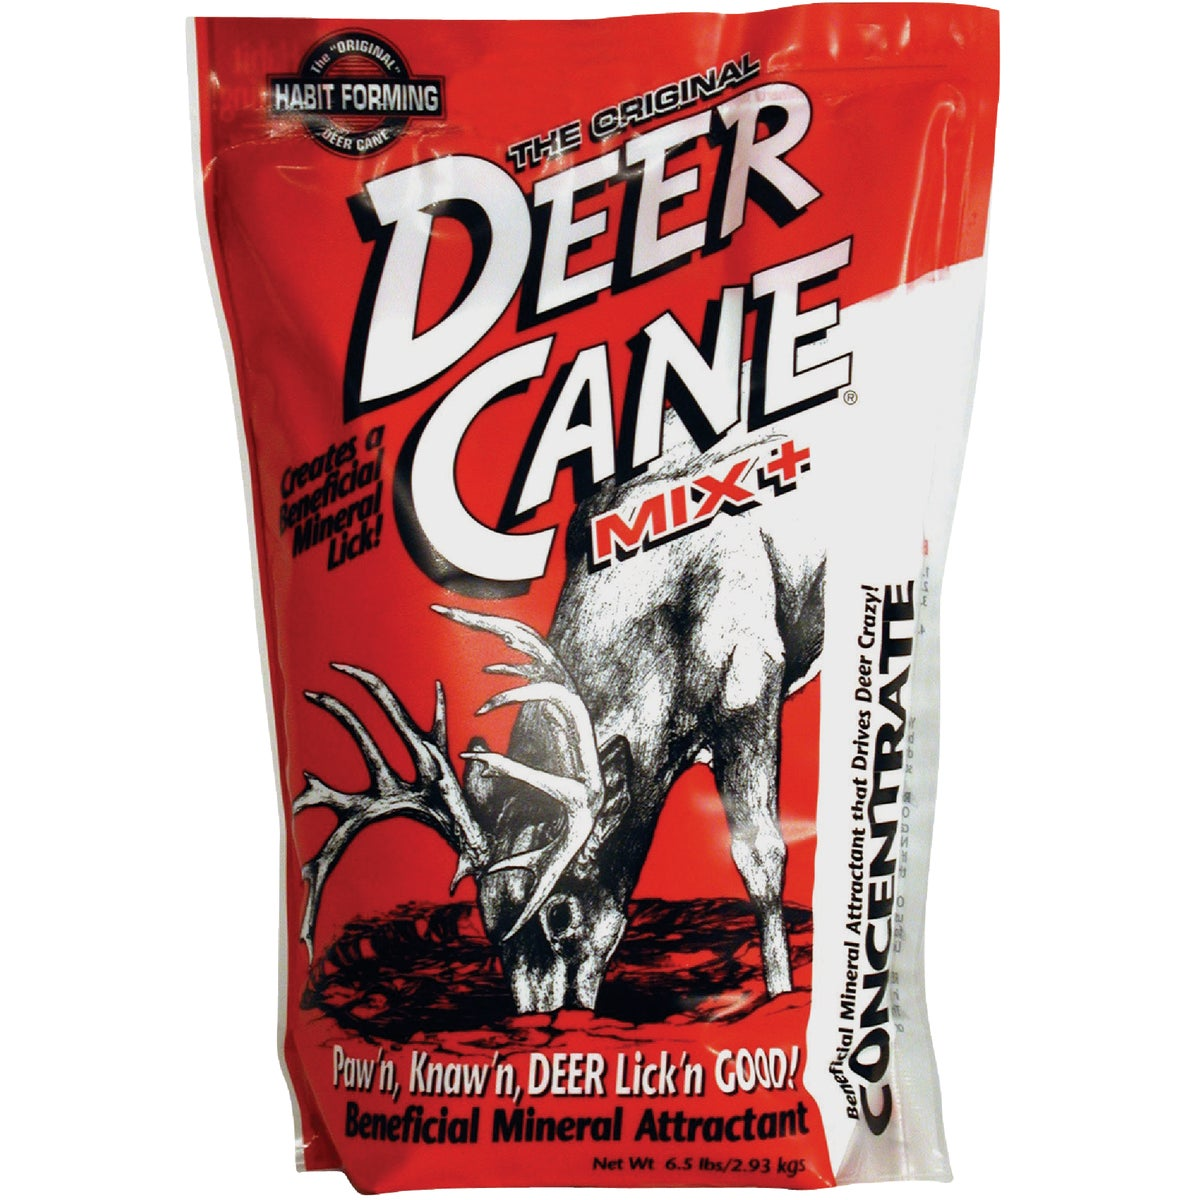 6.5LB DEER CANE MIX - 66596 by Evolved Habitats